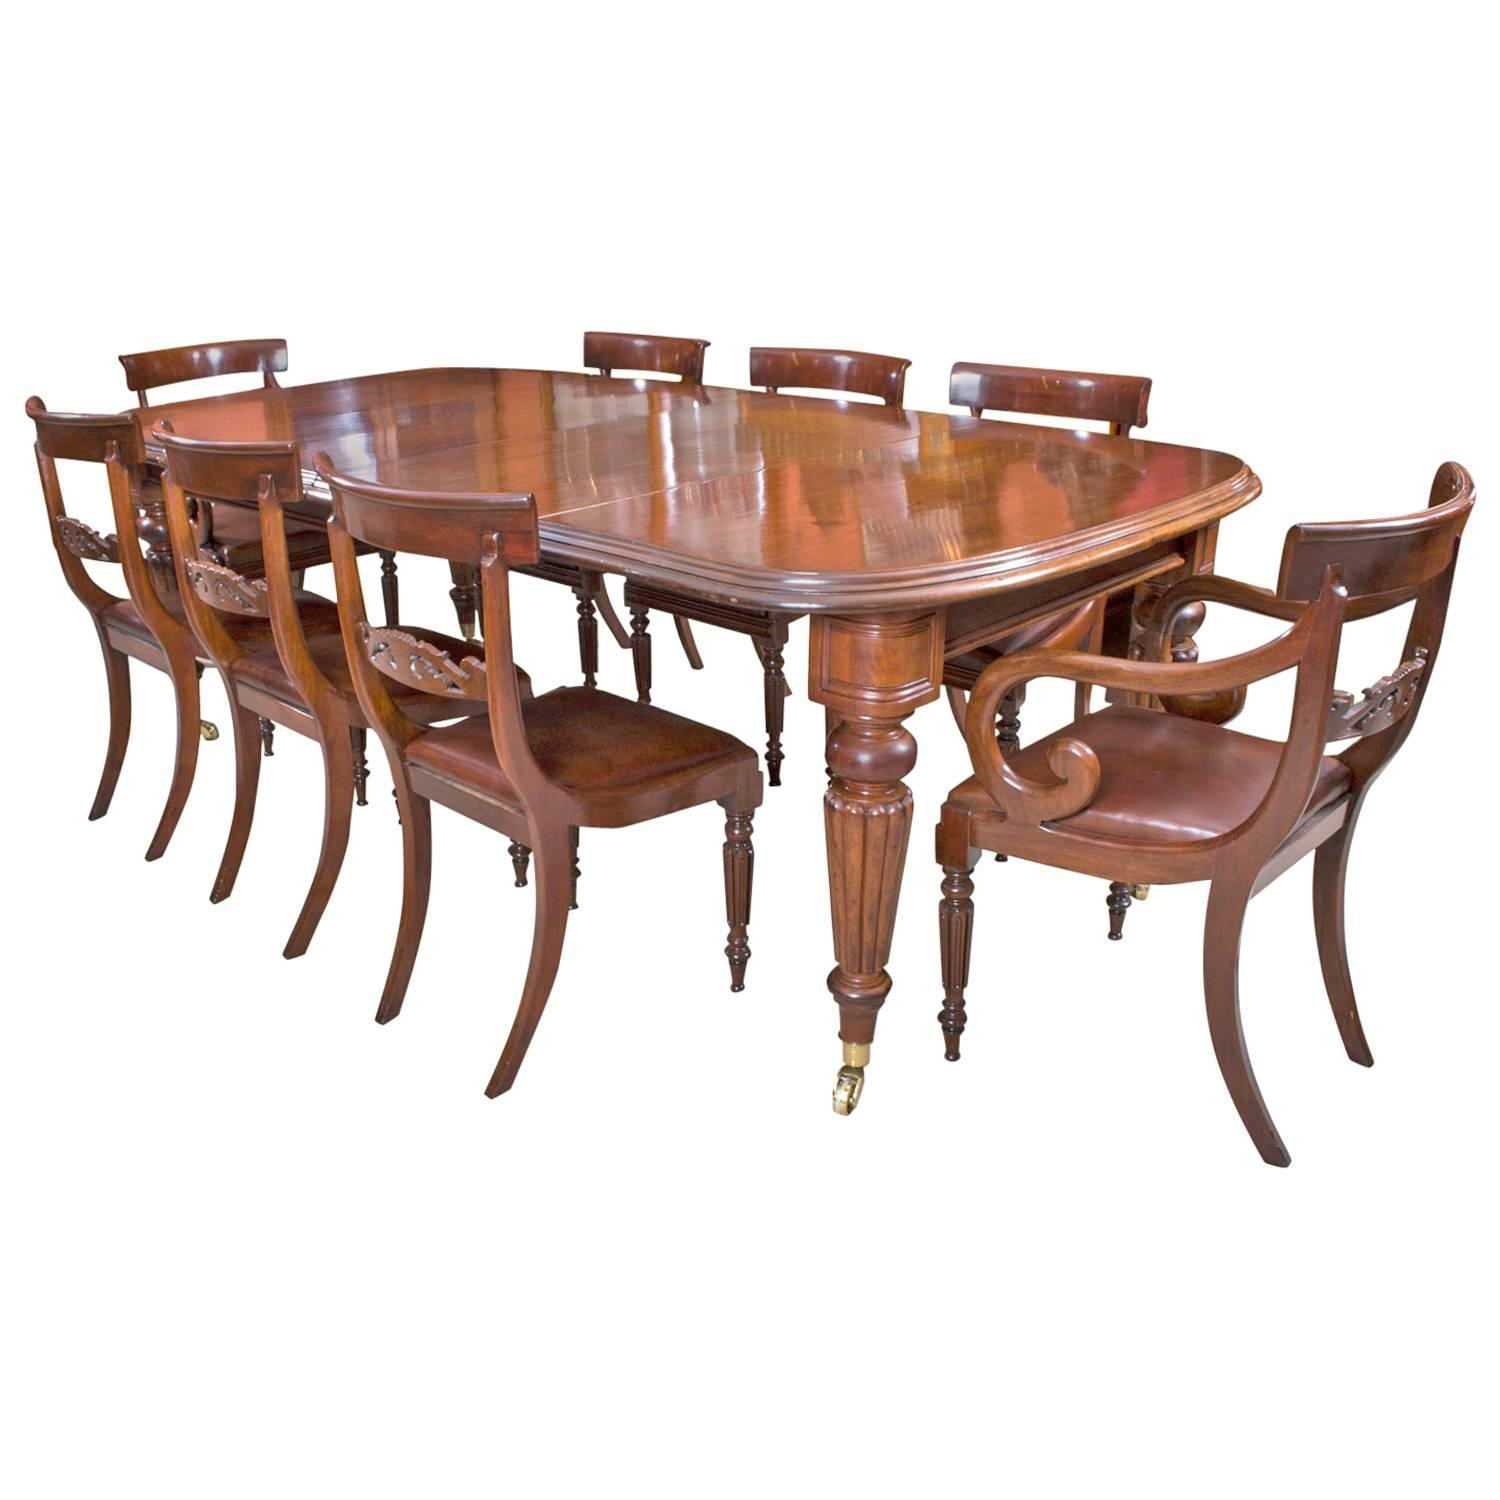 Antique Victorian Mahogany Dining Table Eight Regency  : 4090333z from www.1stdibs.com size 1500 x 1500 jpeg 111kB